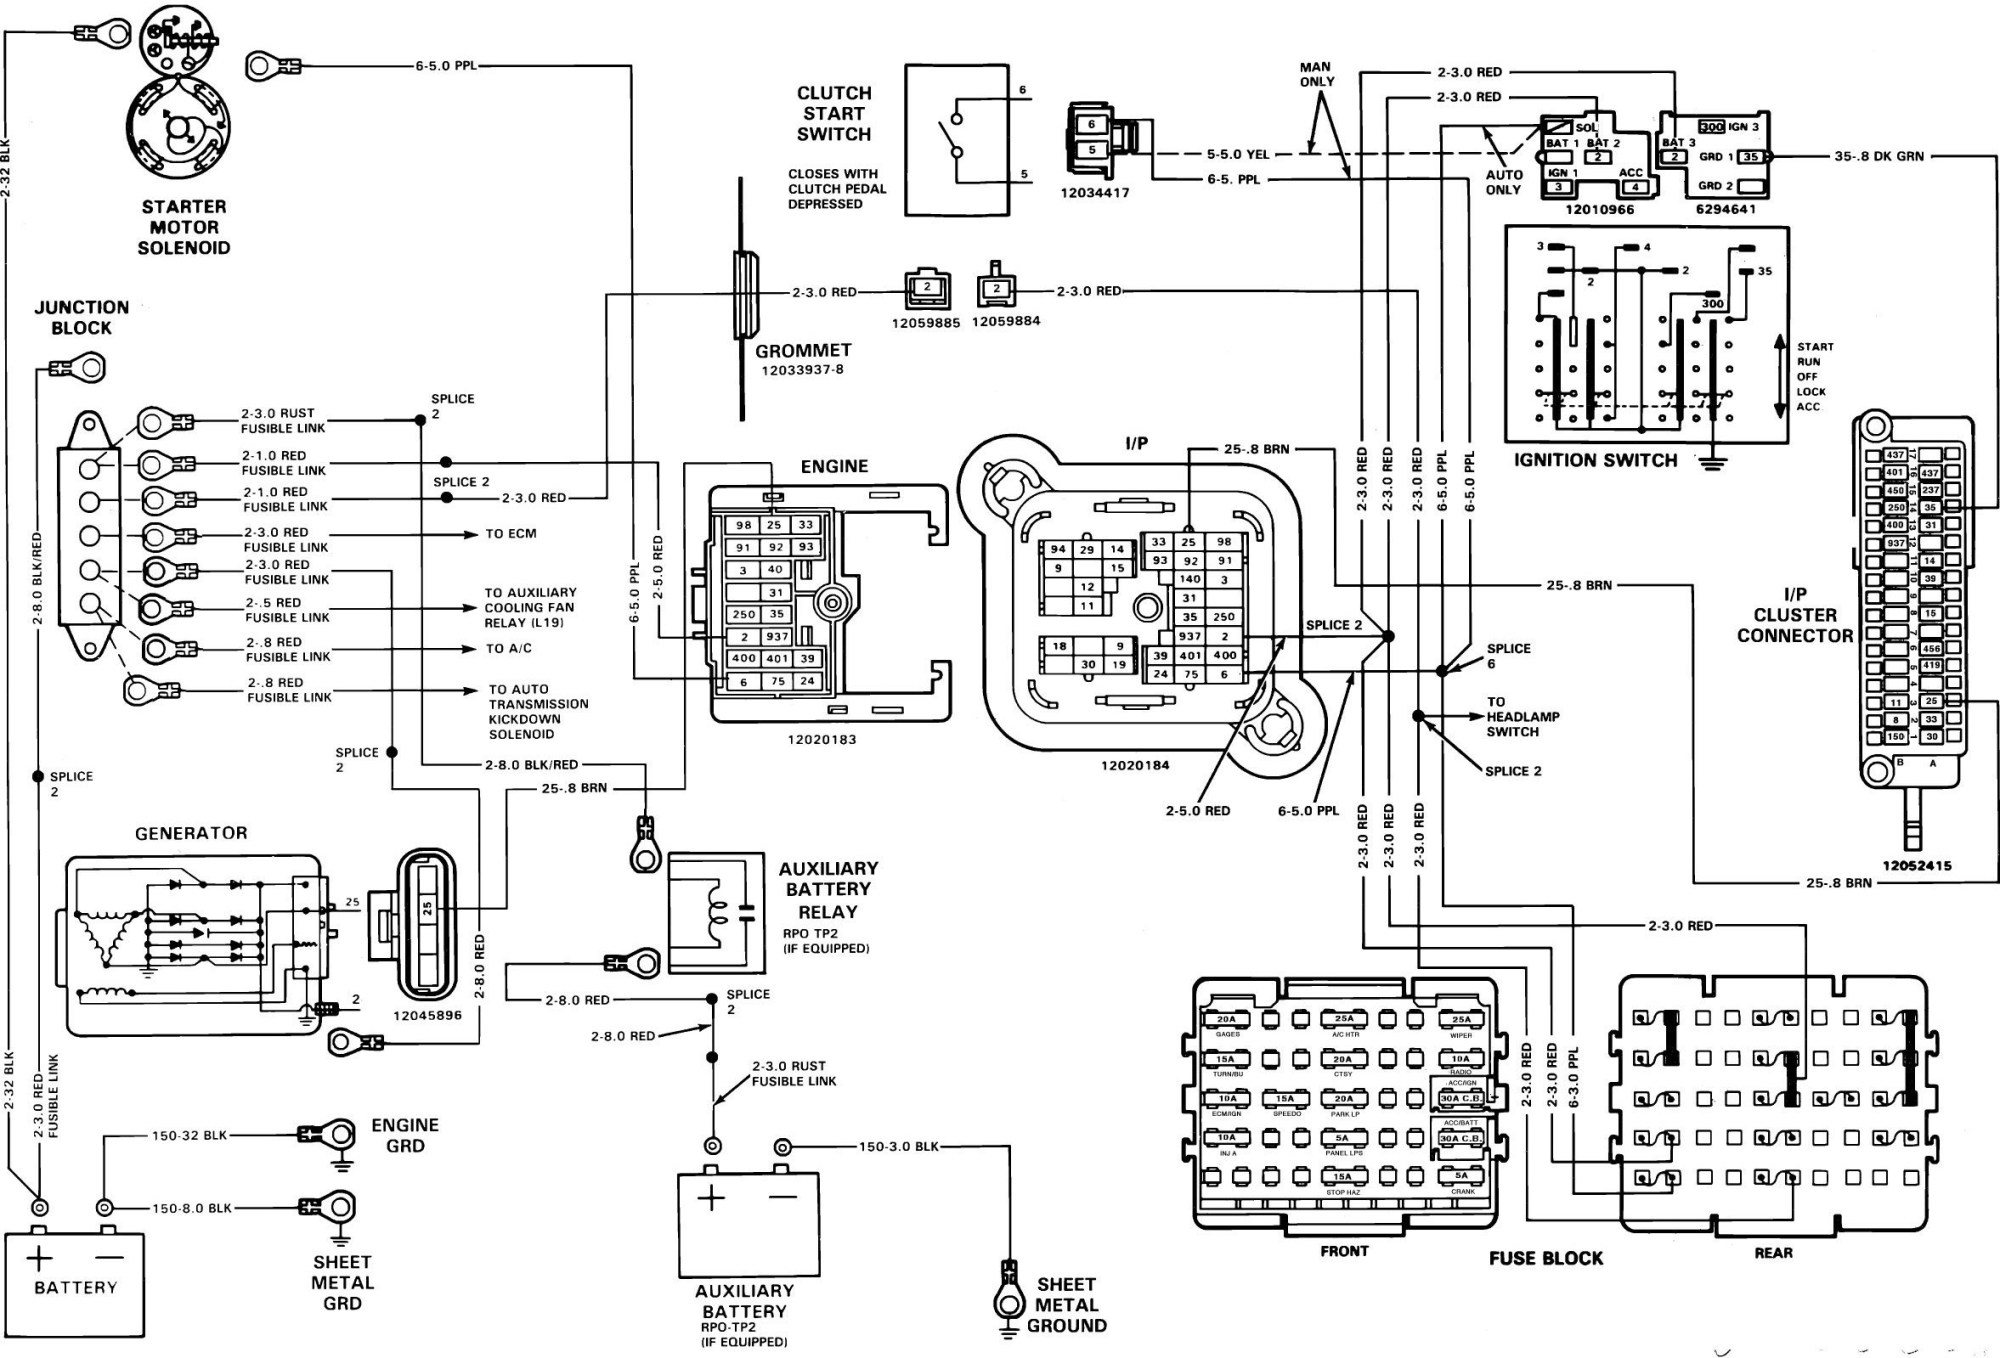 hight resolution of 1990 chevy 1500 engine diagram u2022 wiring diagram for free wireing diagrams chevy aveo wiring diagram chevy aveo ls 2008